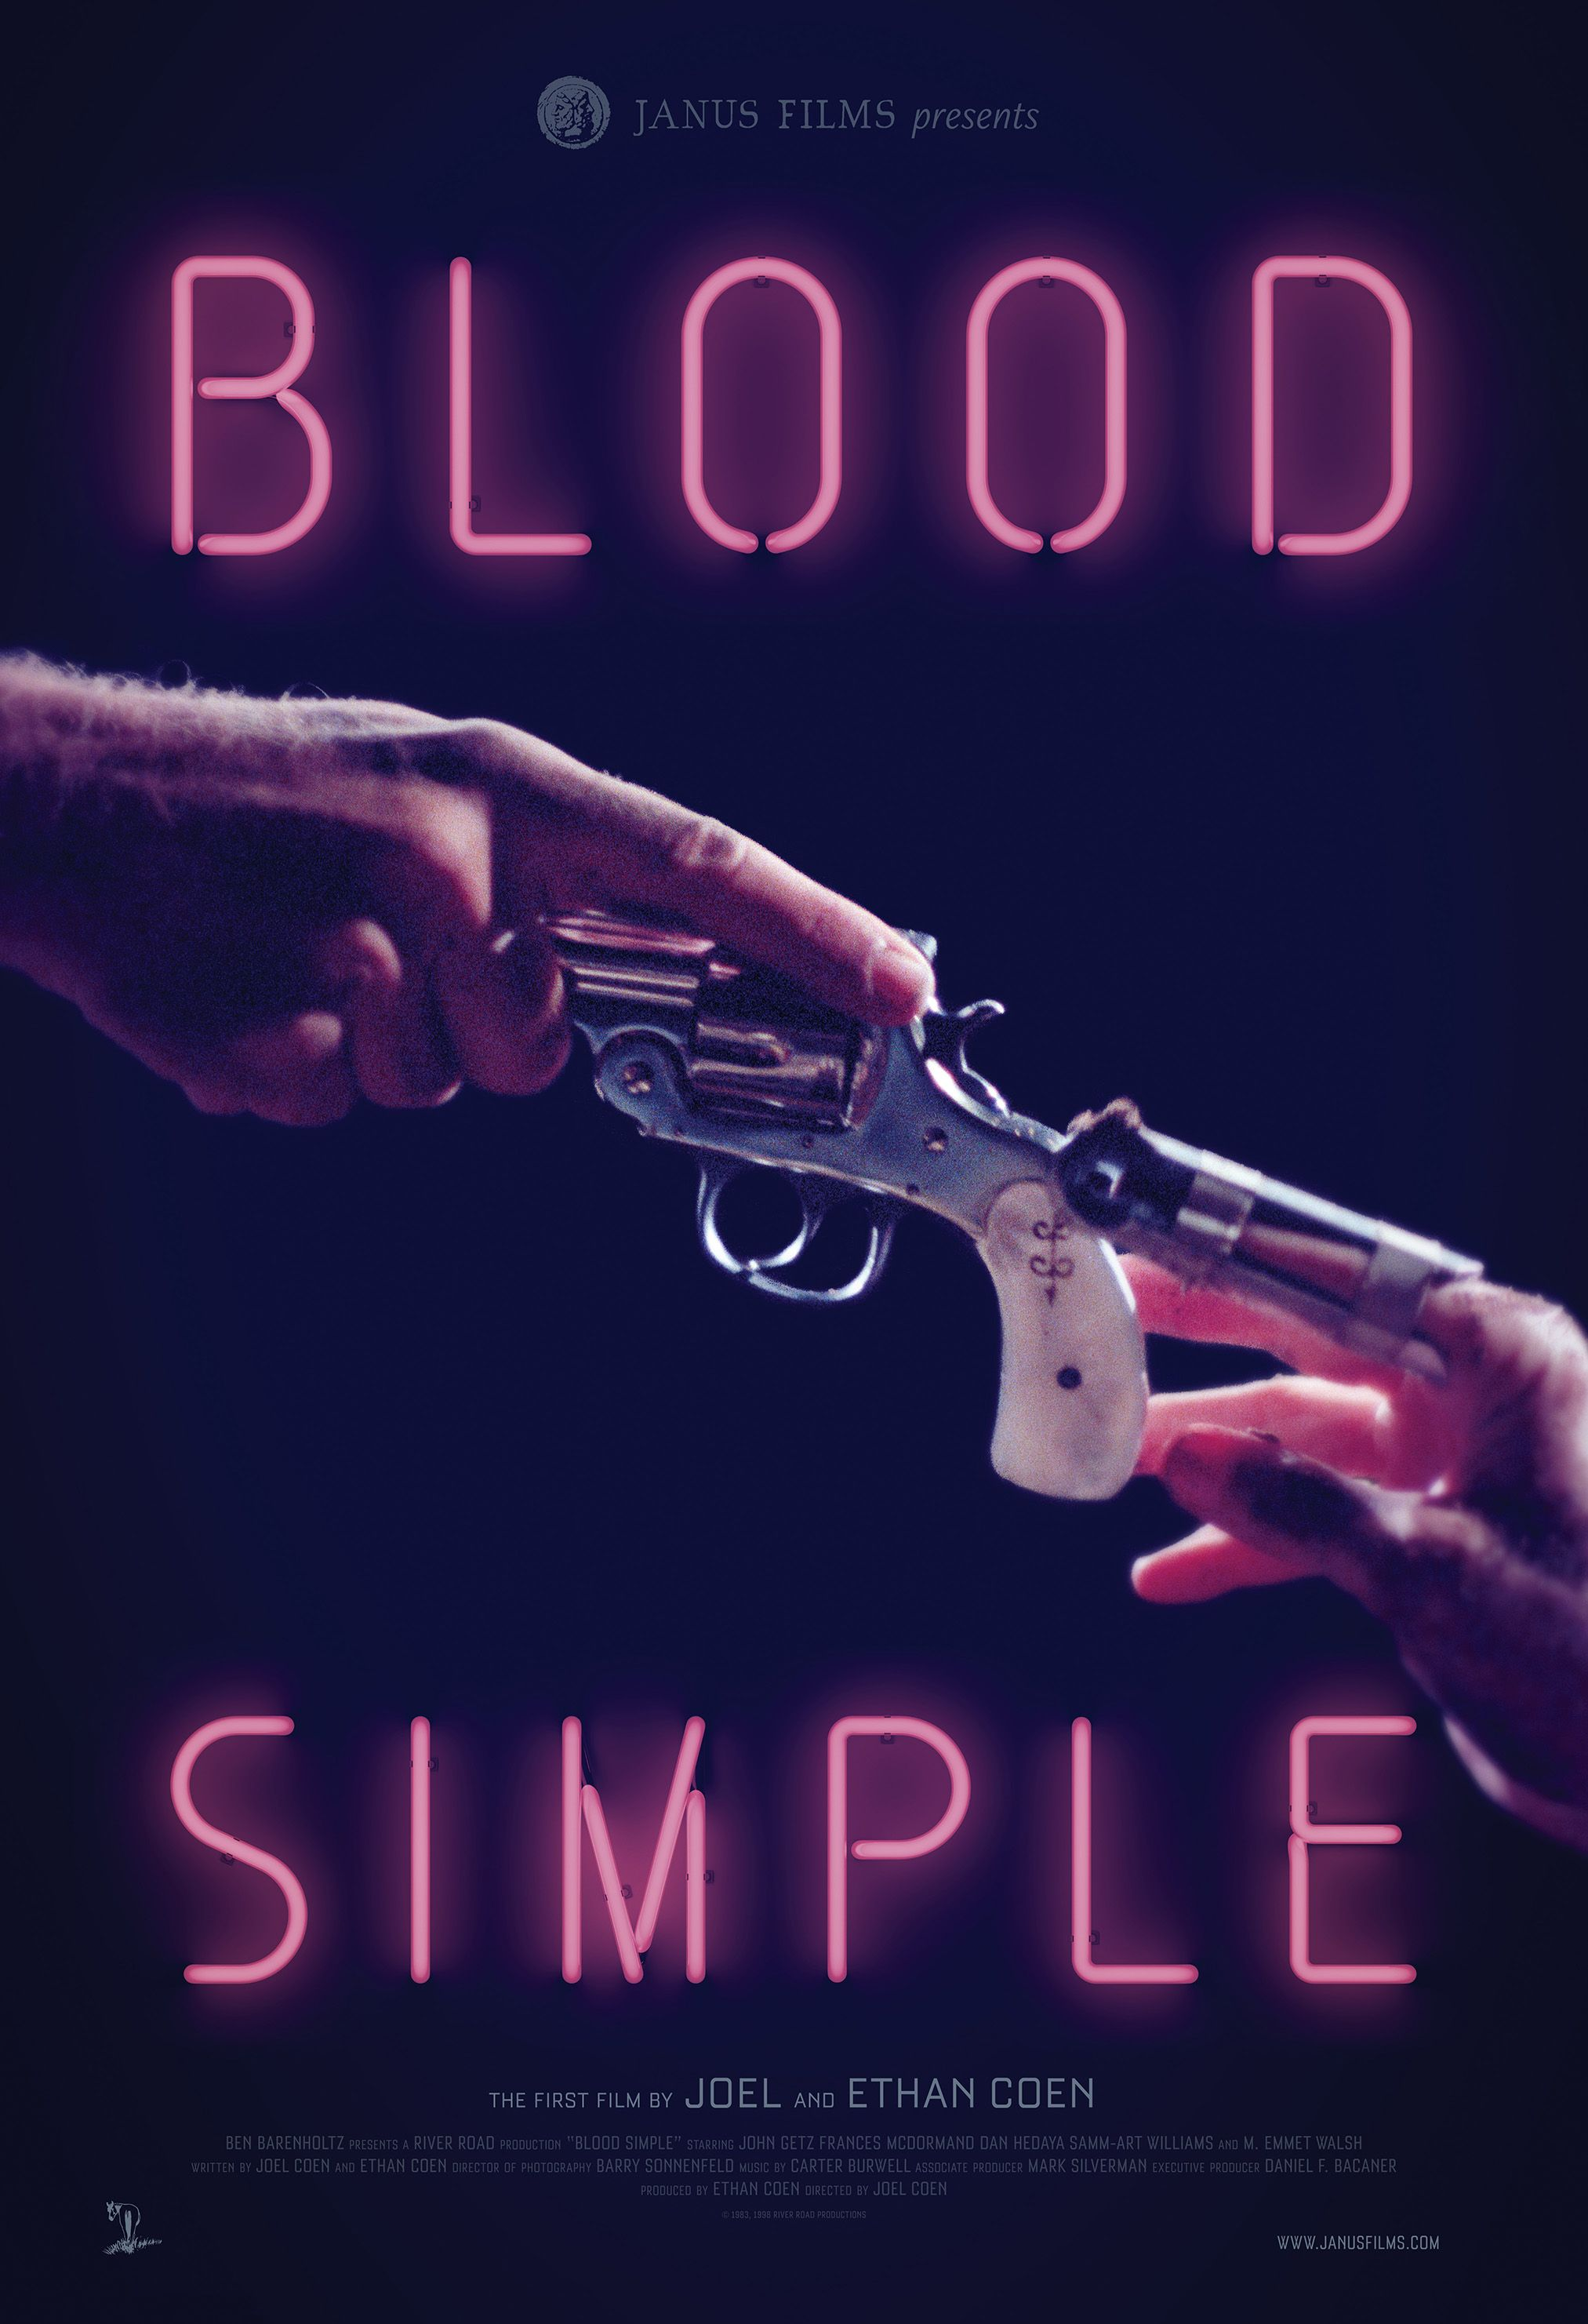 Poster for Everything is Stories w/ Blood Simple.